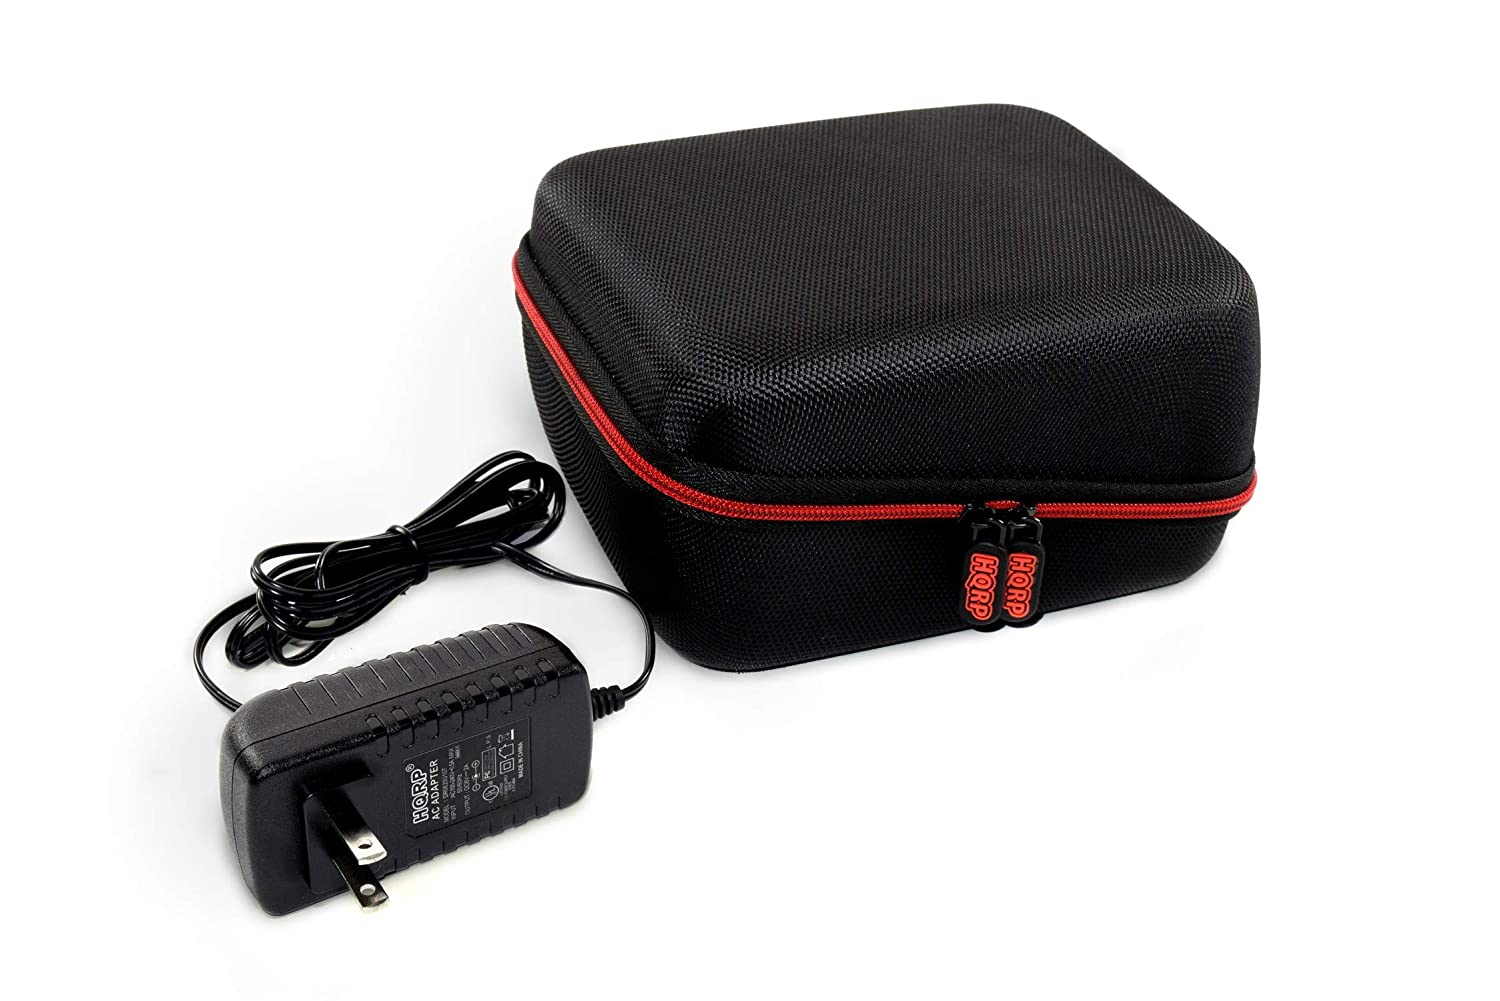 HQRP Hard Case and AC Adapter Compatible with Vive Precision Automatic Upper Arm Blood Pressure Monitor